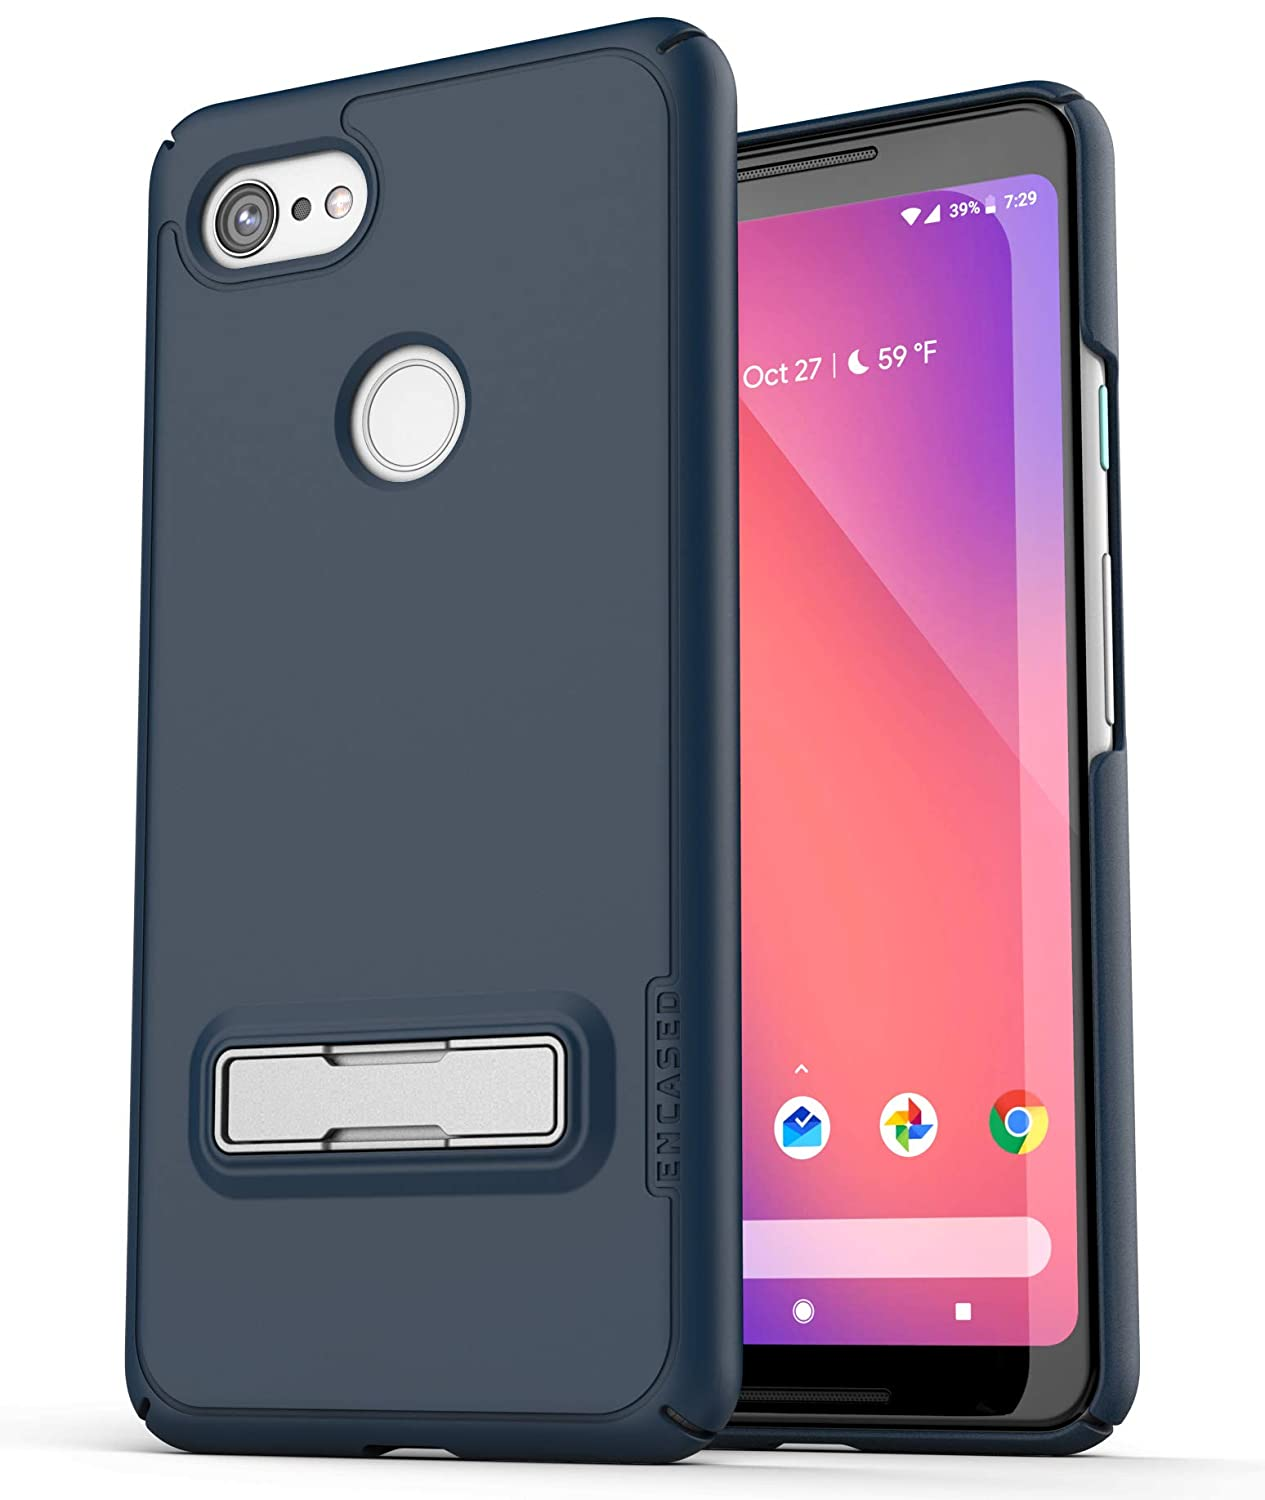 size 40 afc80 8d7dc Encased Slim Case for Google Pixel 3 Case with Kickstand, Ultra Thin  Protective Grip Cover with Metal Stand (Slimline) Navy Blue